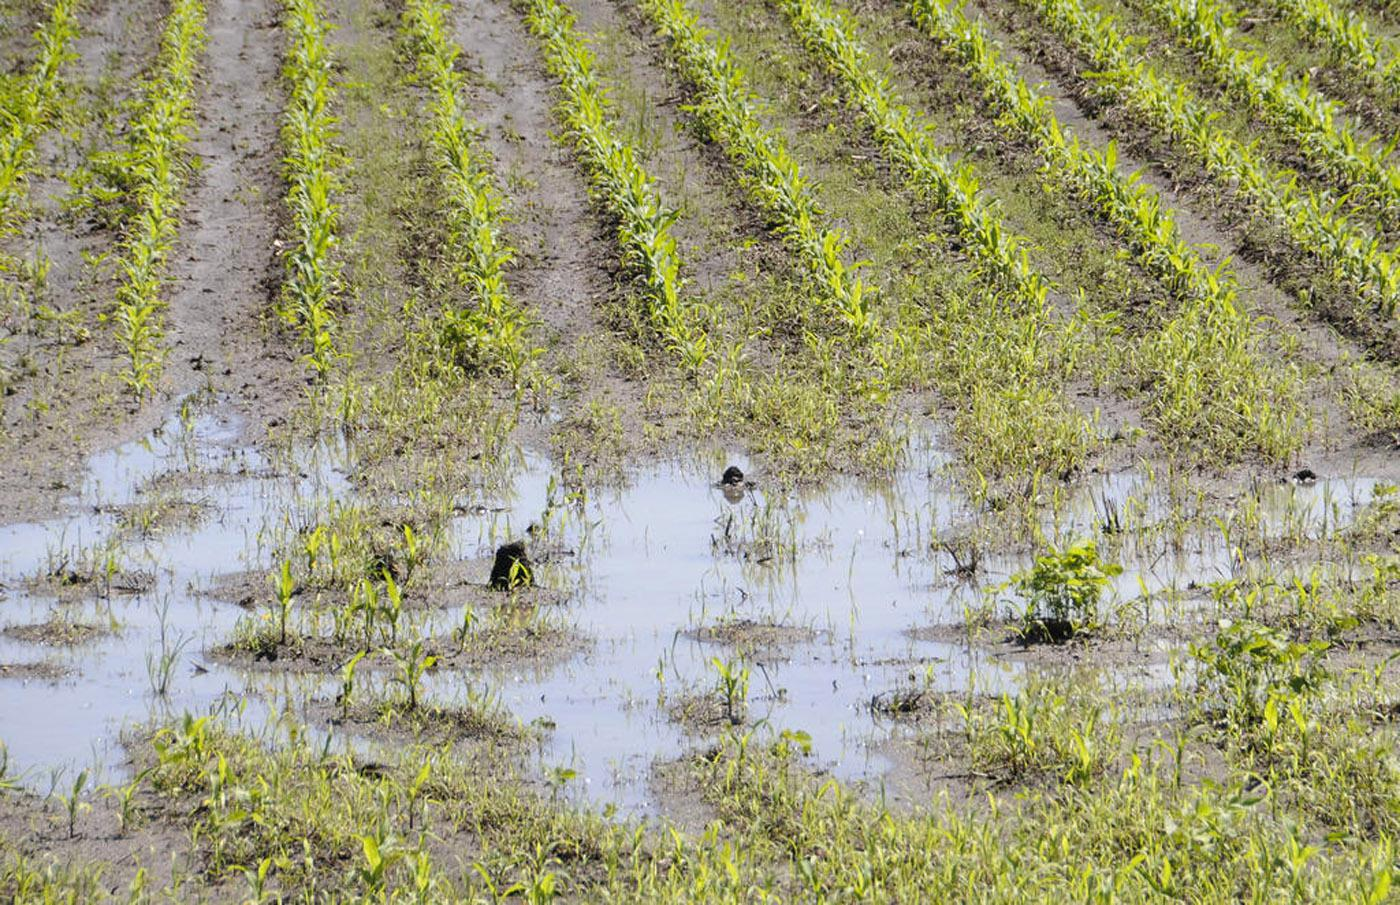 Ongoing rains are flooding fields, delaying planting and postponing needed management such as weed control. This south Monroe County corn field was flooded by late April storms. (Photo by Scott Corey)